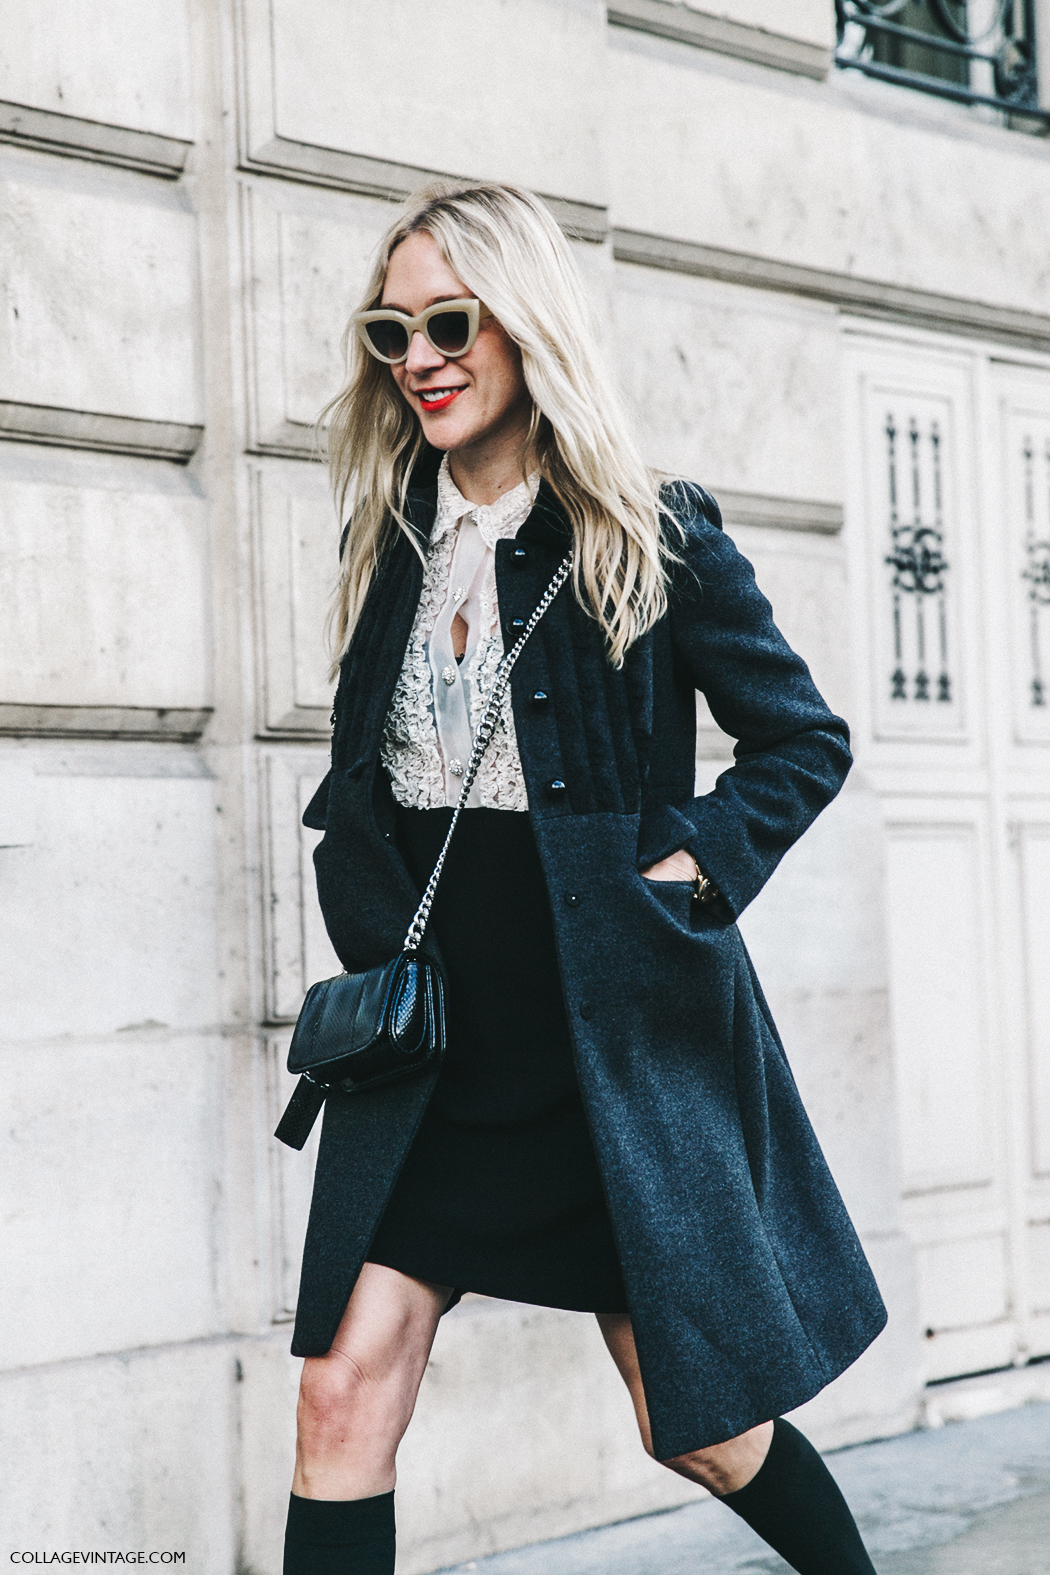 PFW-Paris_Fashion_Week_Fall_2016-Street_Style-Collage_Vintage-Miu_Miu-Chloe_Sevigny-Socks-15